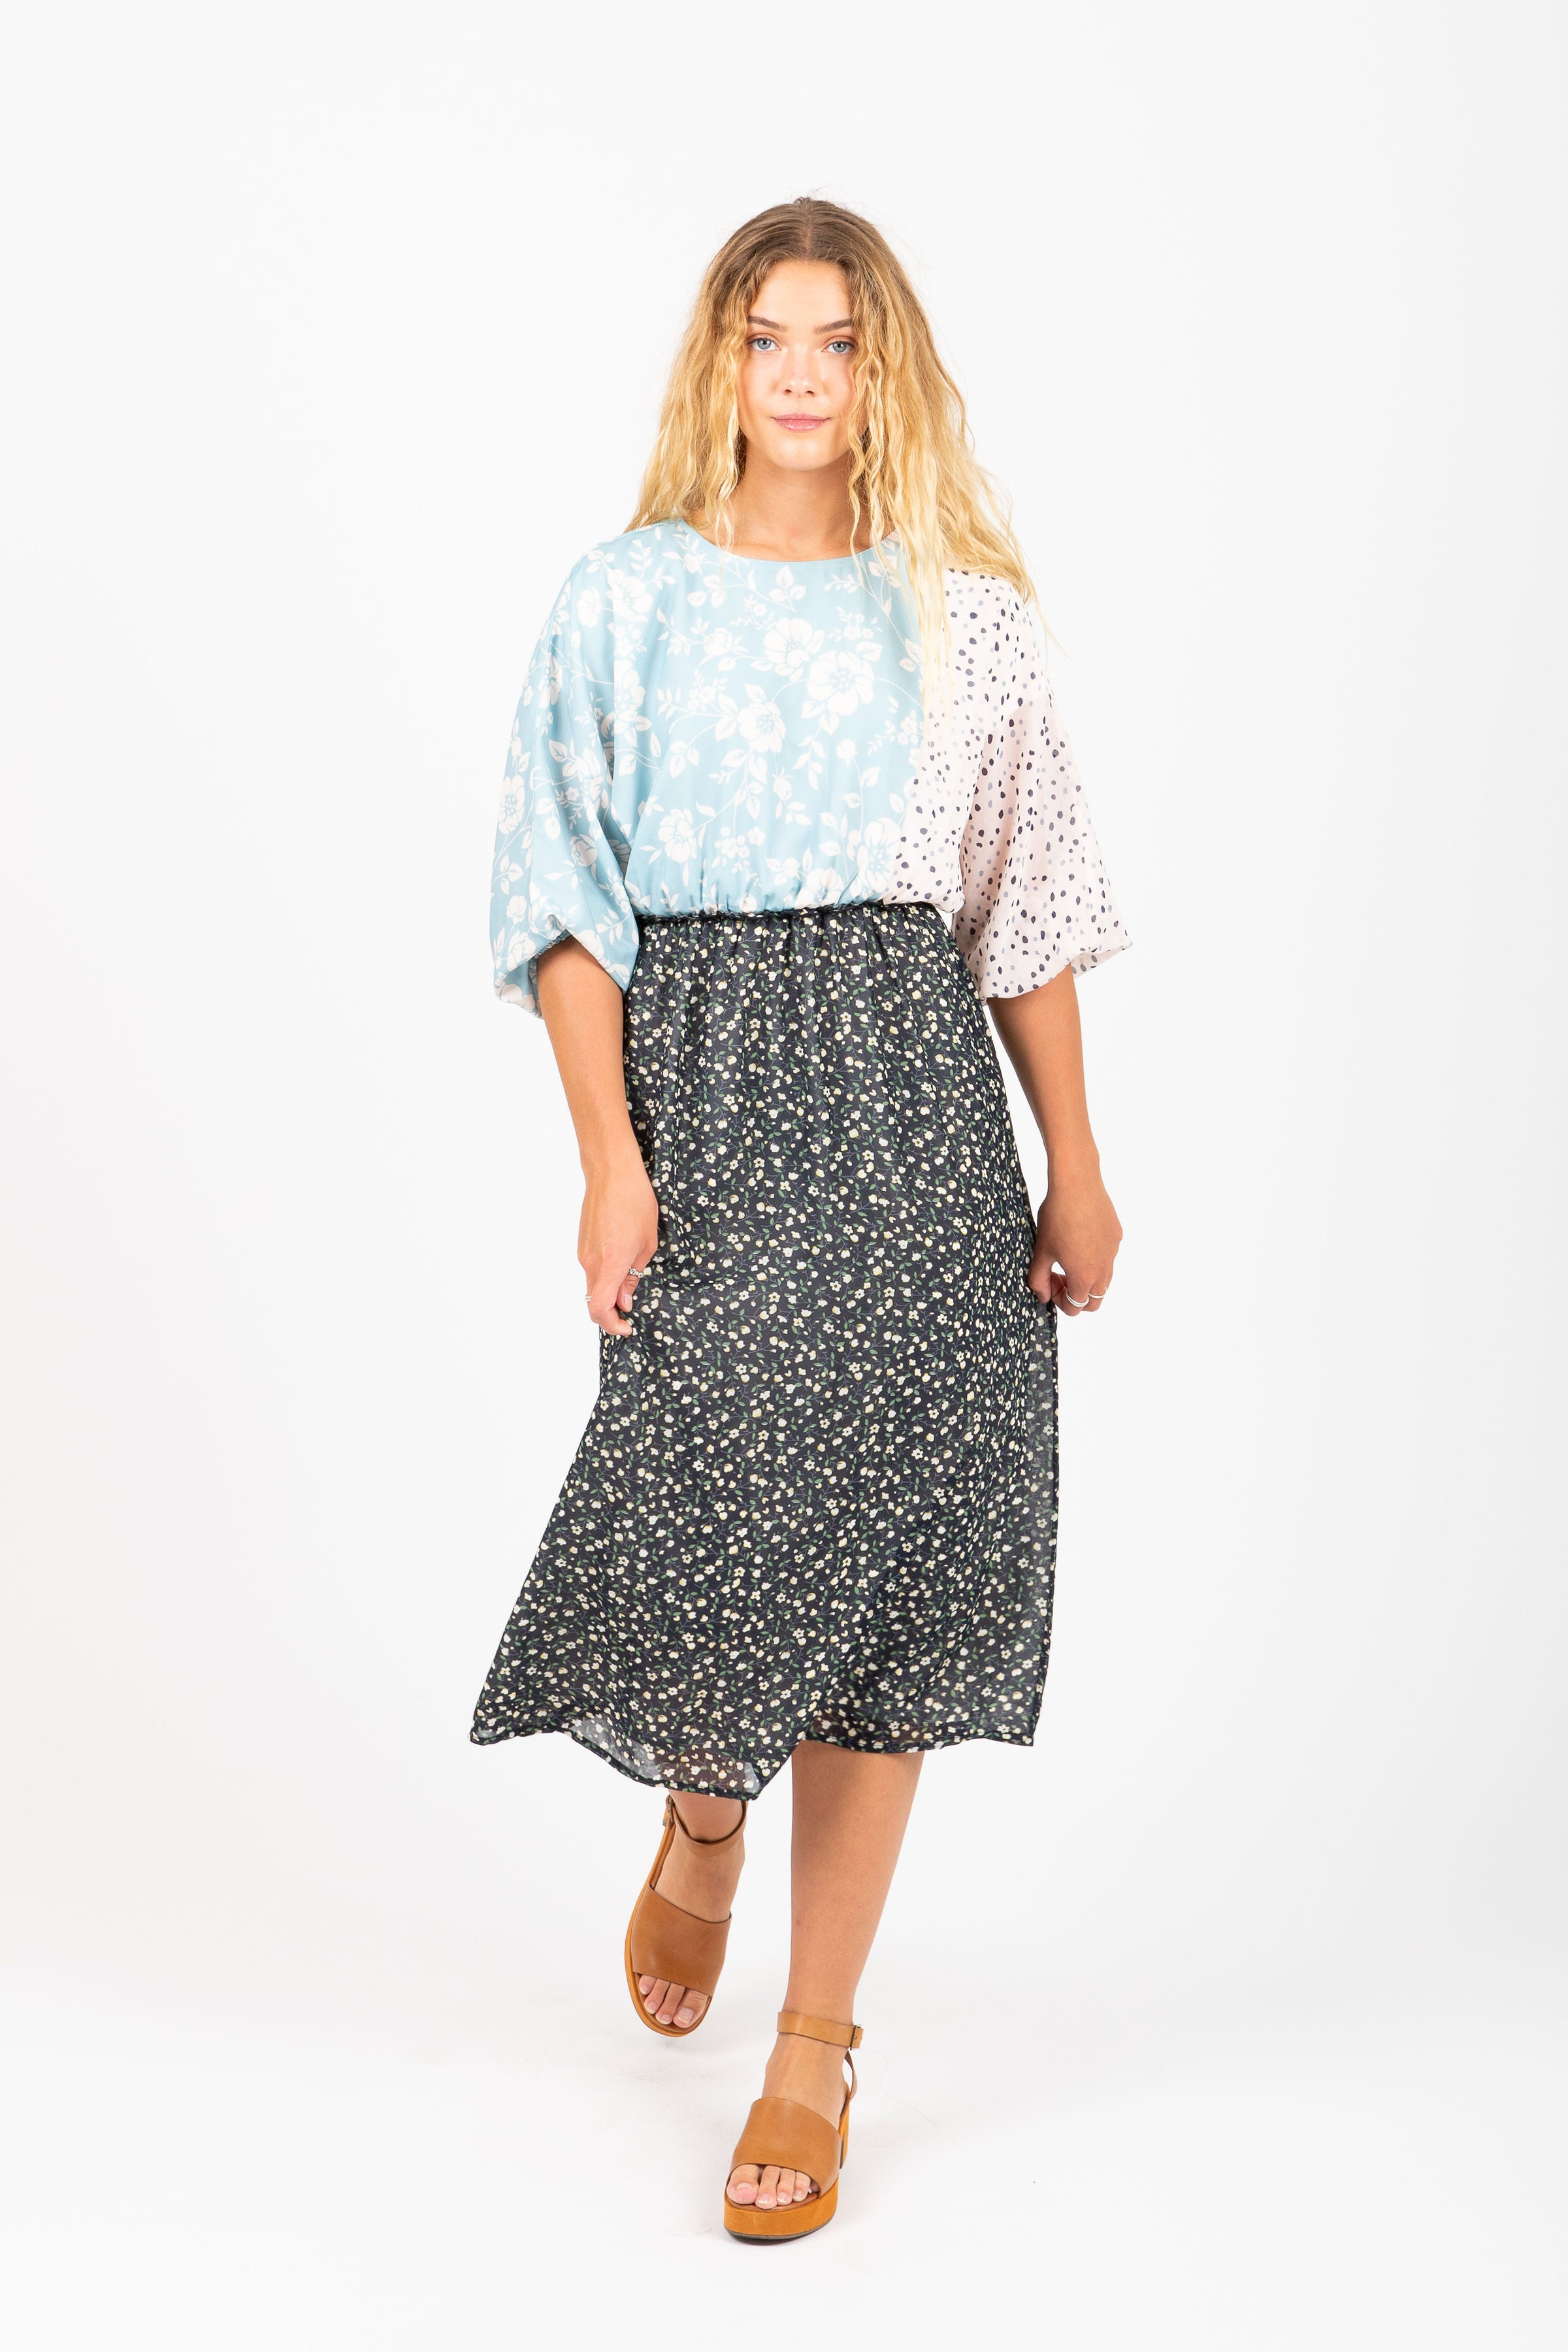 Piper & Scoot: The Beam Mixed Pattern Dress in Navy